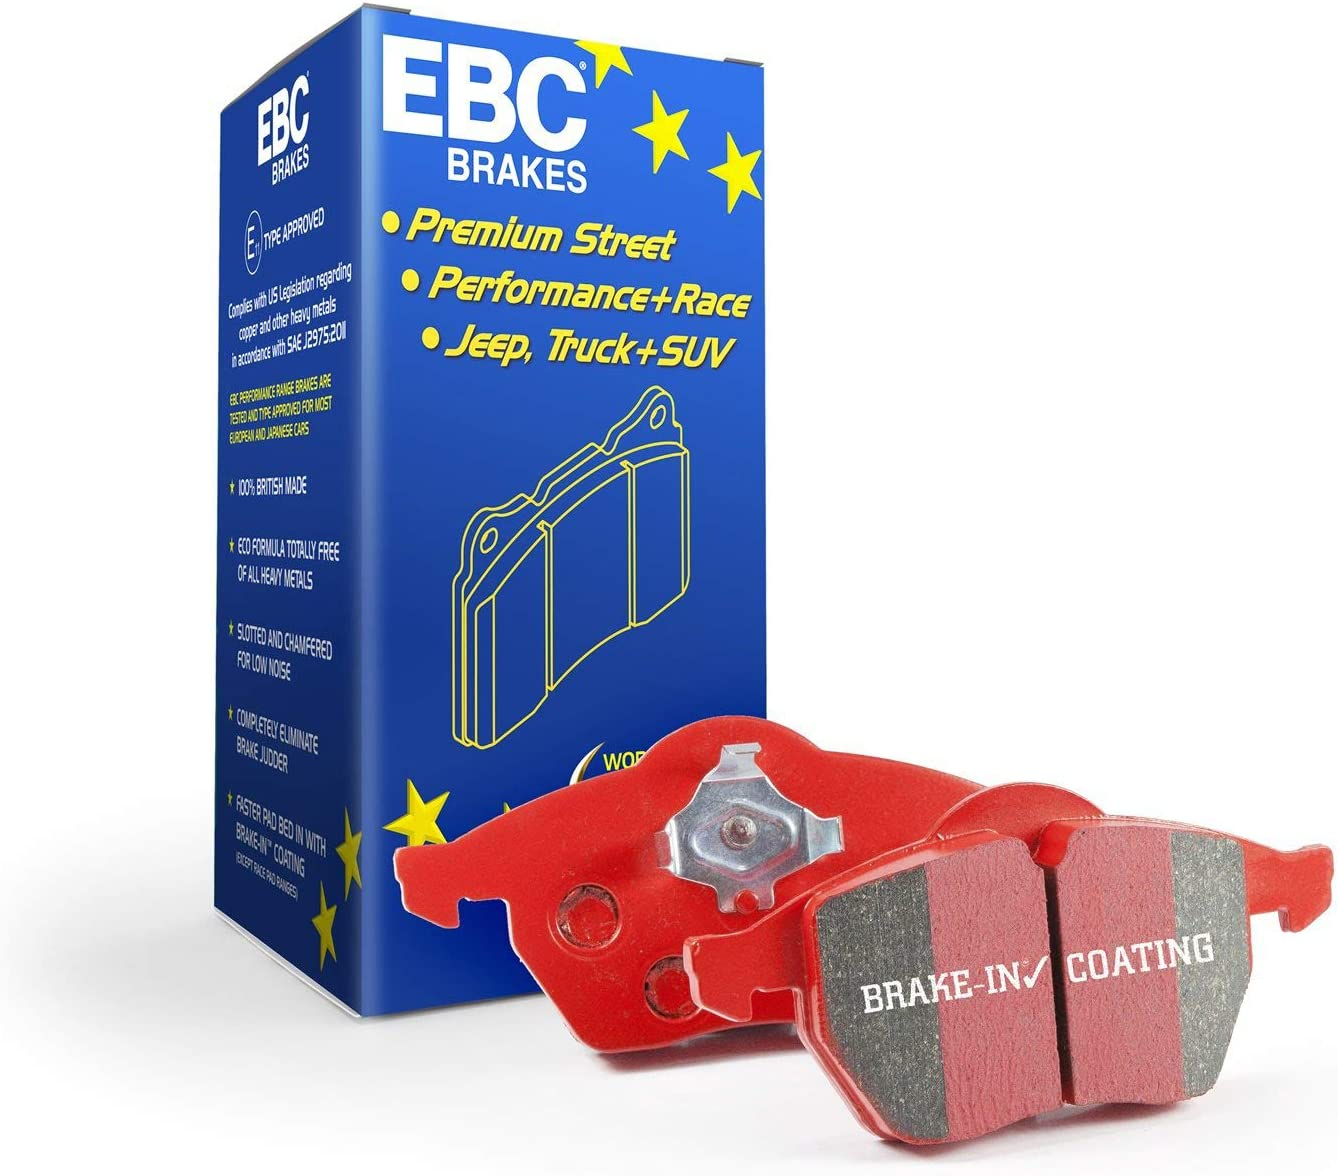 NEW EBC 312mm FRONT USR SLOTTED BRAKE DISCS AND REDSTUFF PADS KIT PD07KF201